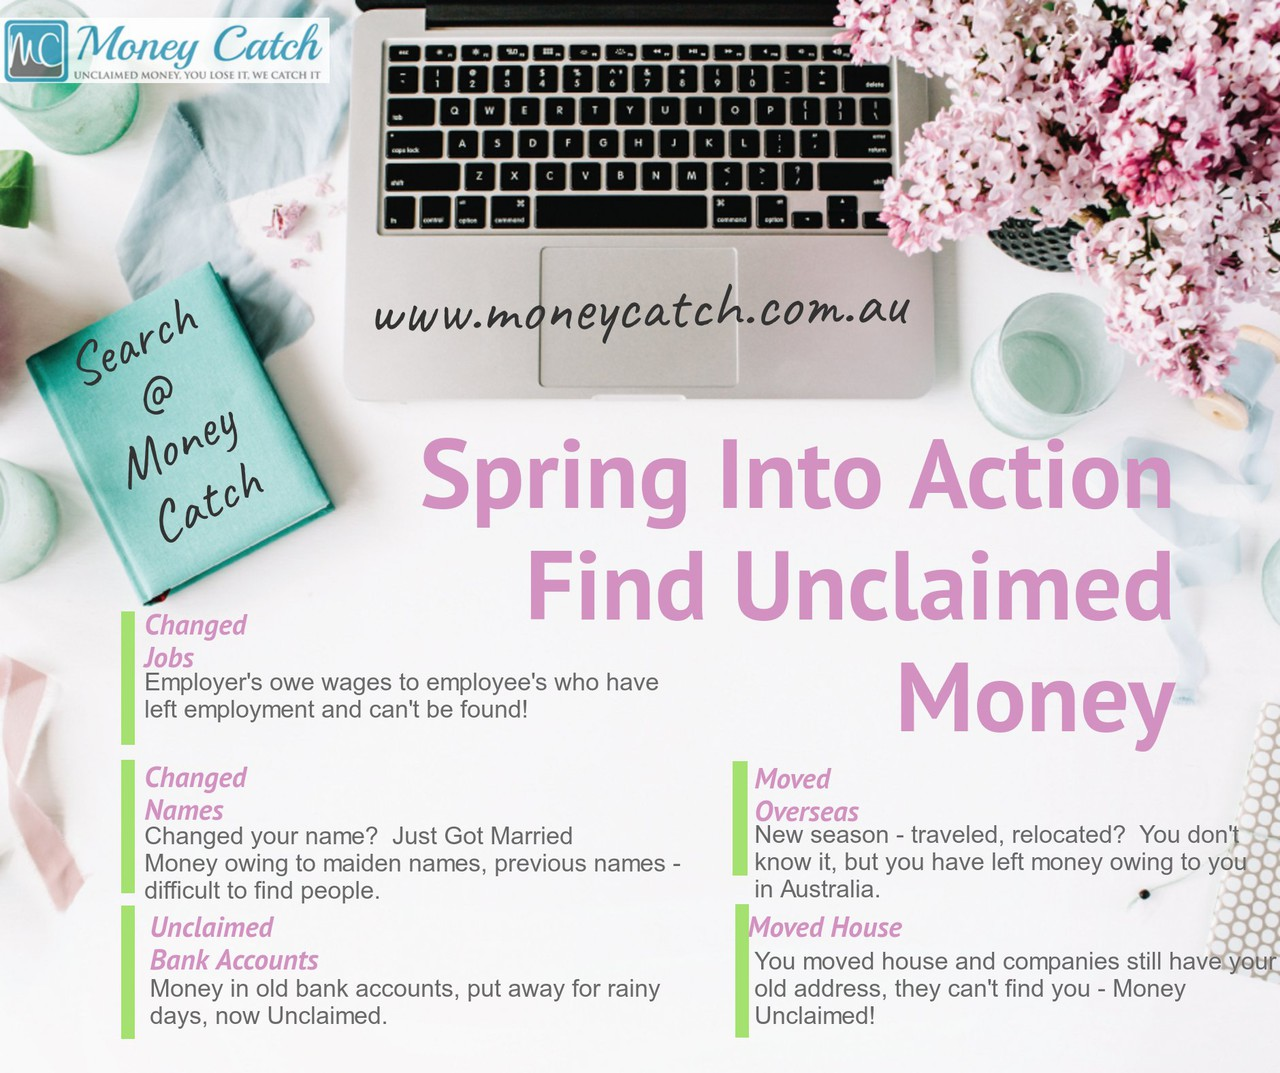 Spring Into Action Find Unclaimed Money at Money Catch